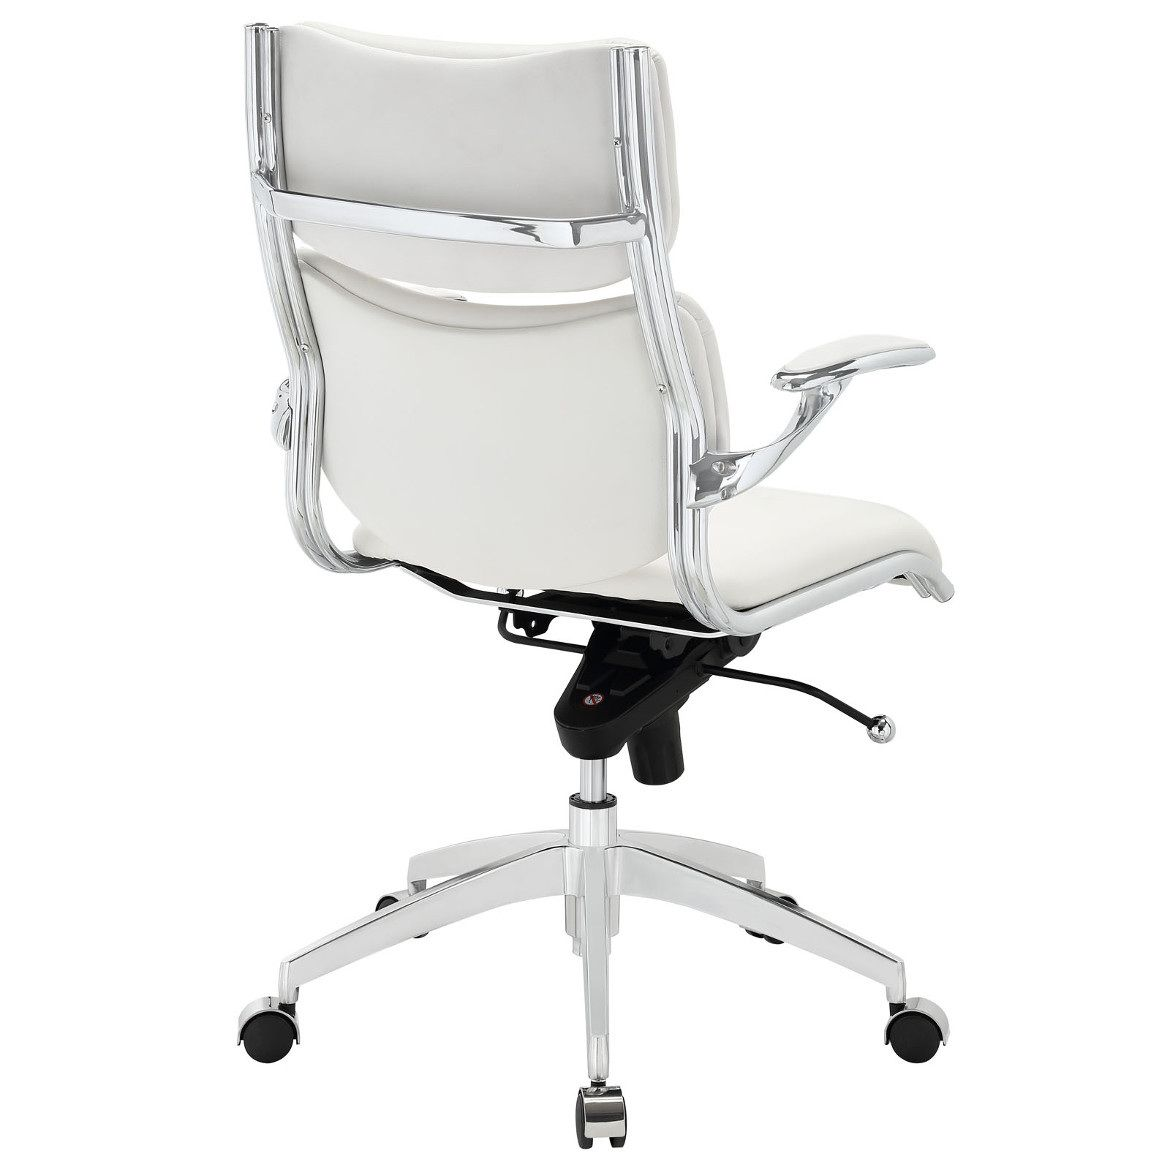 Office Max Desk Chairs - Expensive Home Office Furniture Check more at //  sc 1 st  Pinterest & Office Max Desk Chairs - Expensive Home Office Furniture Check more ...